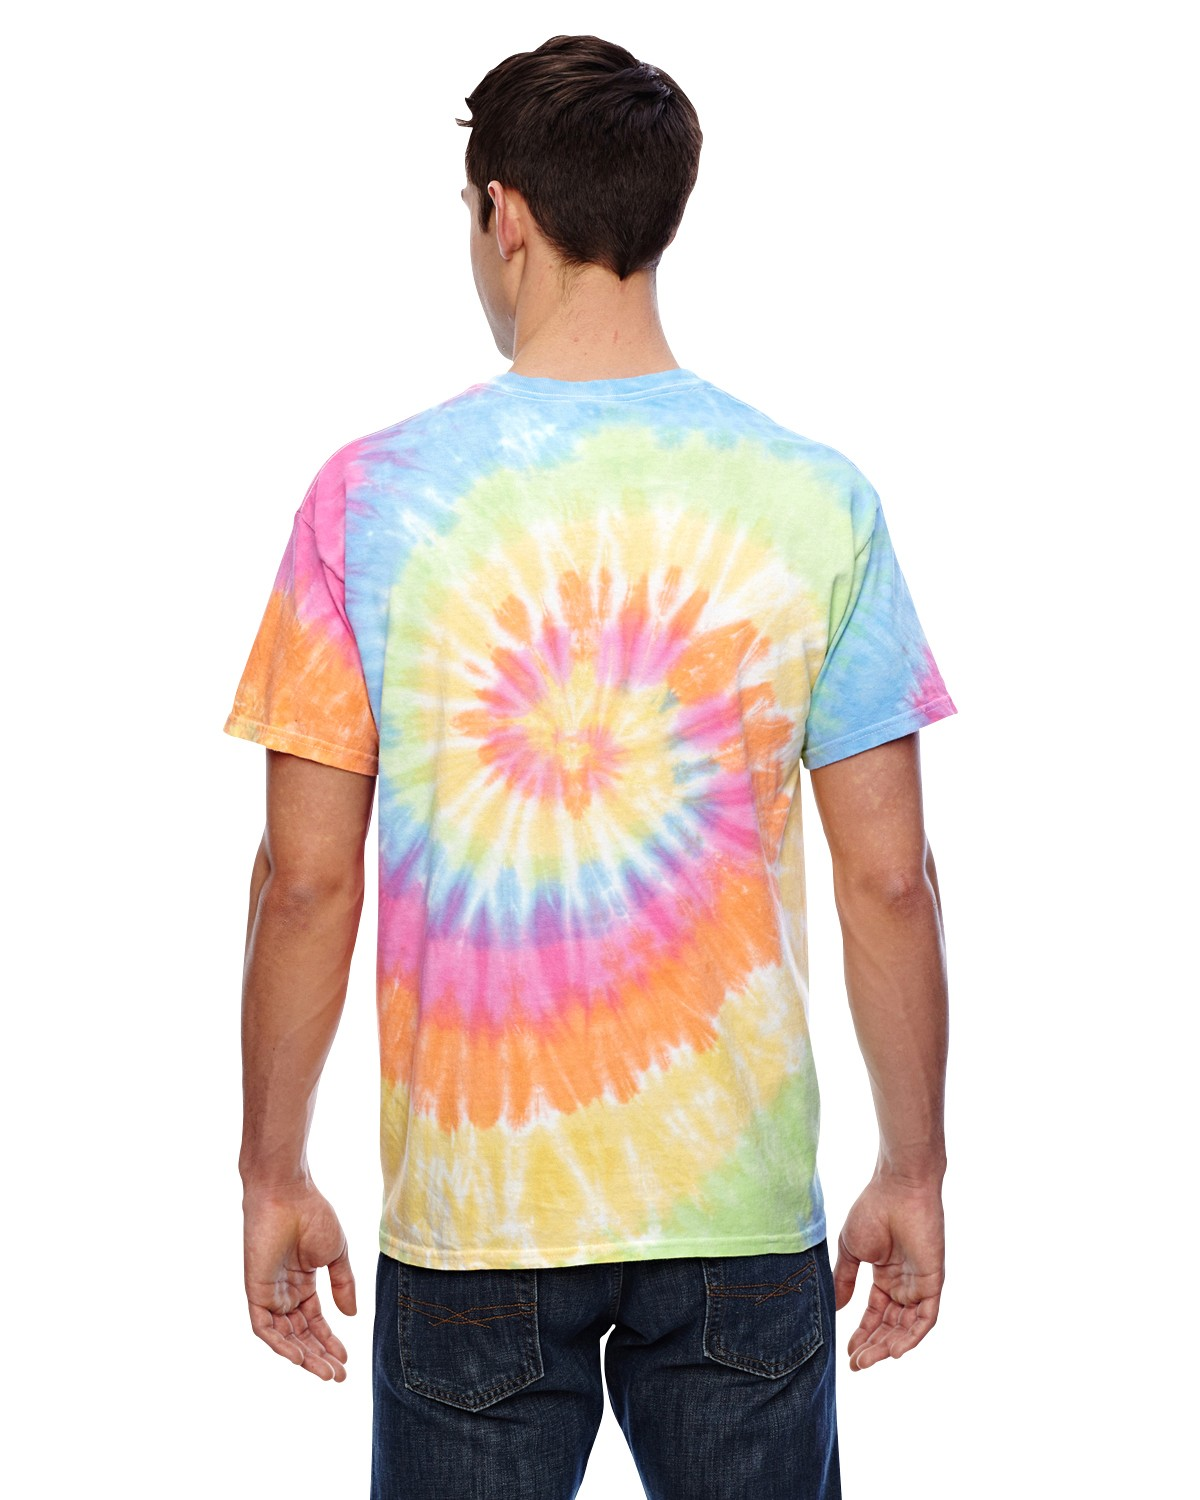 CD100 Tie-Dye ETERNITY